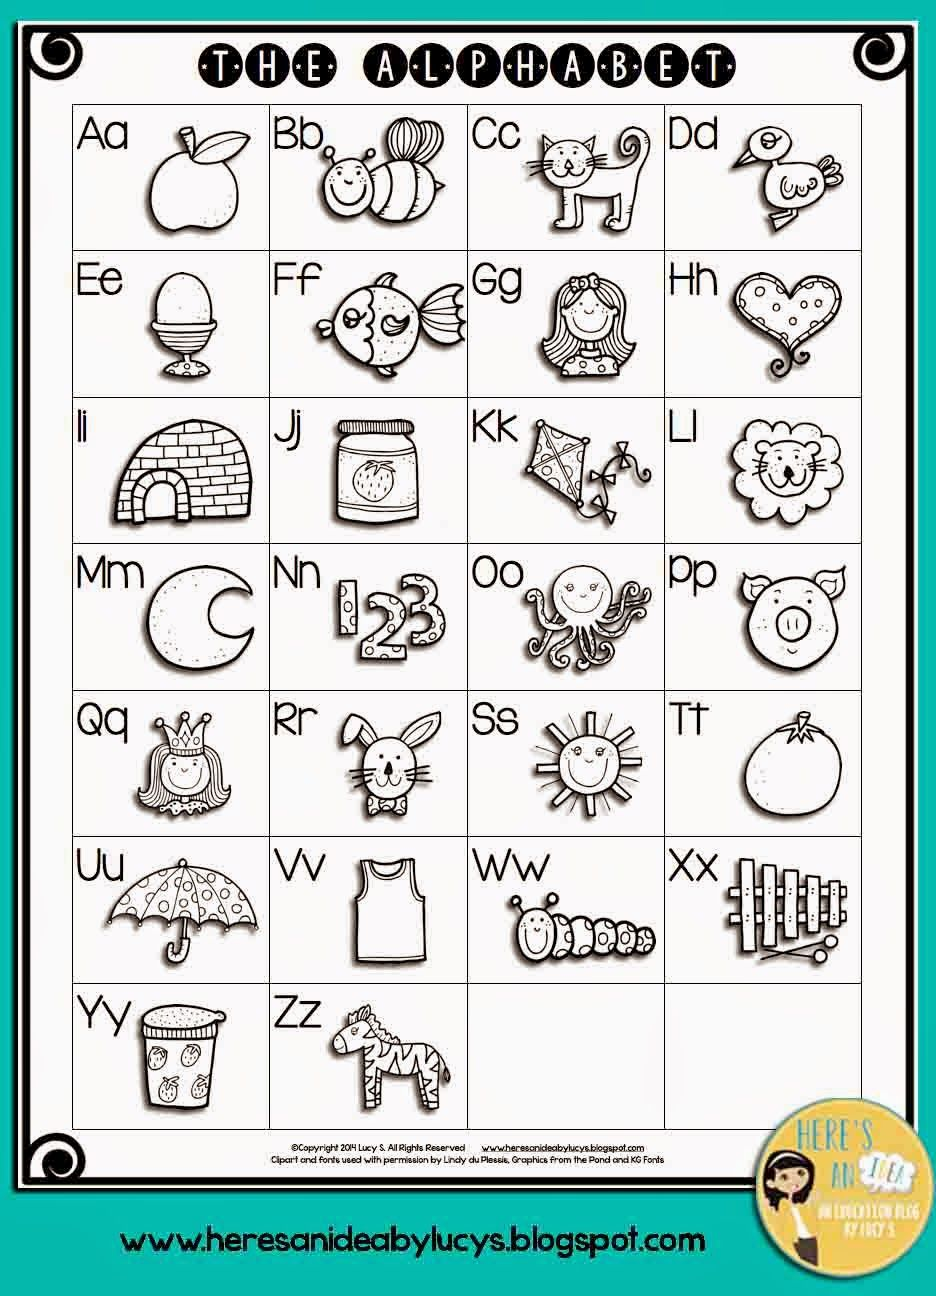 Color english worksheets - Alphabet Activities Free Black Line Abc Anchor Chart Poster Could Use As A